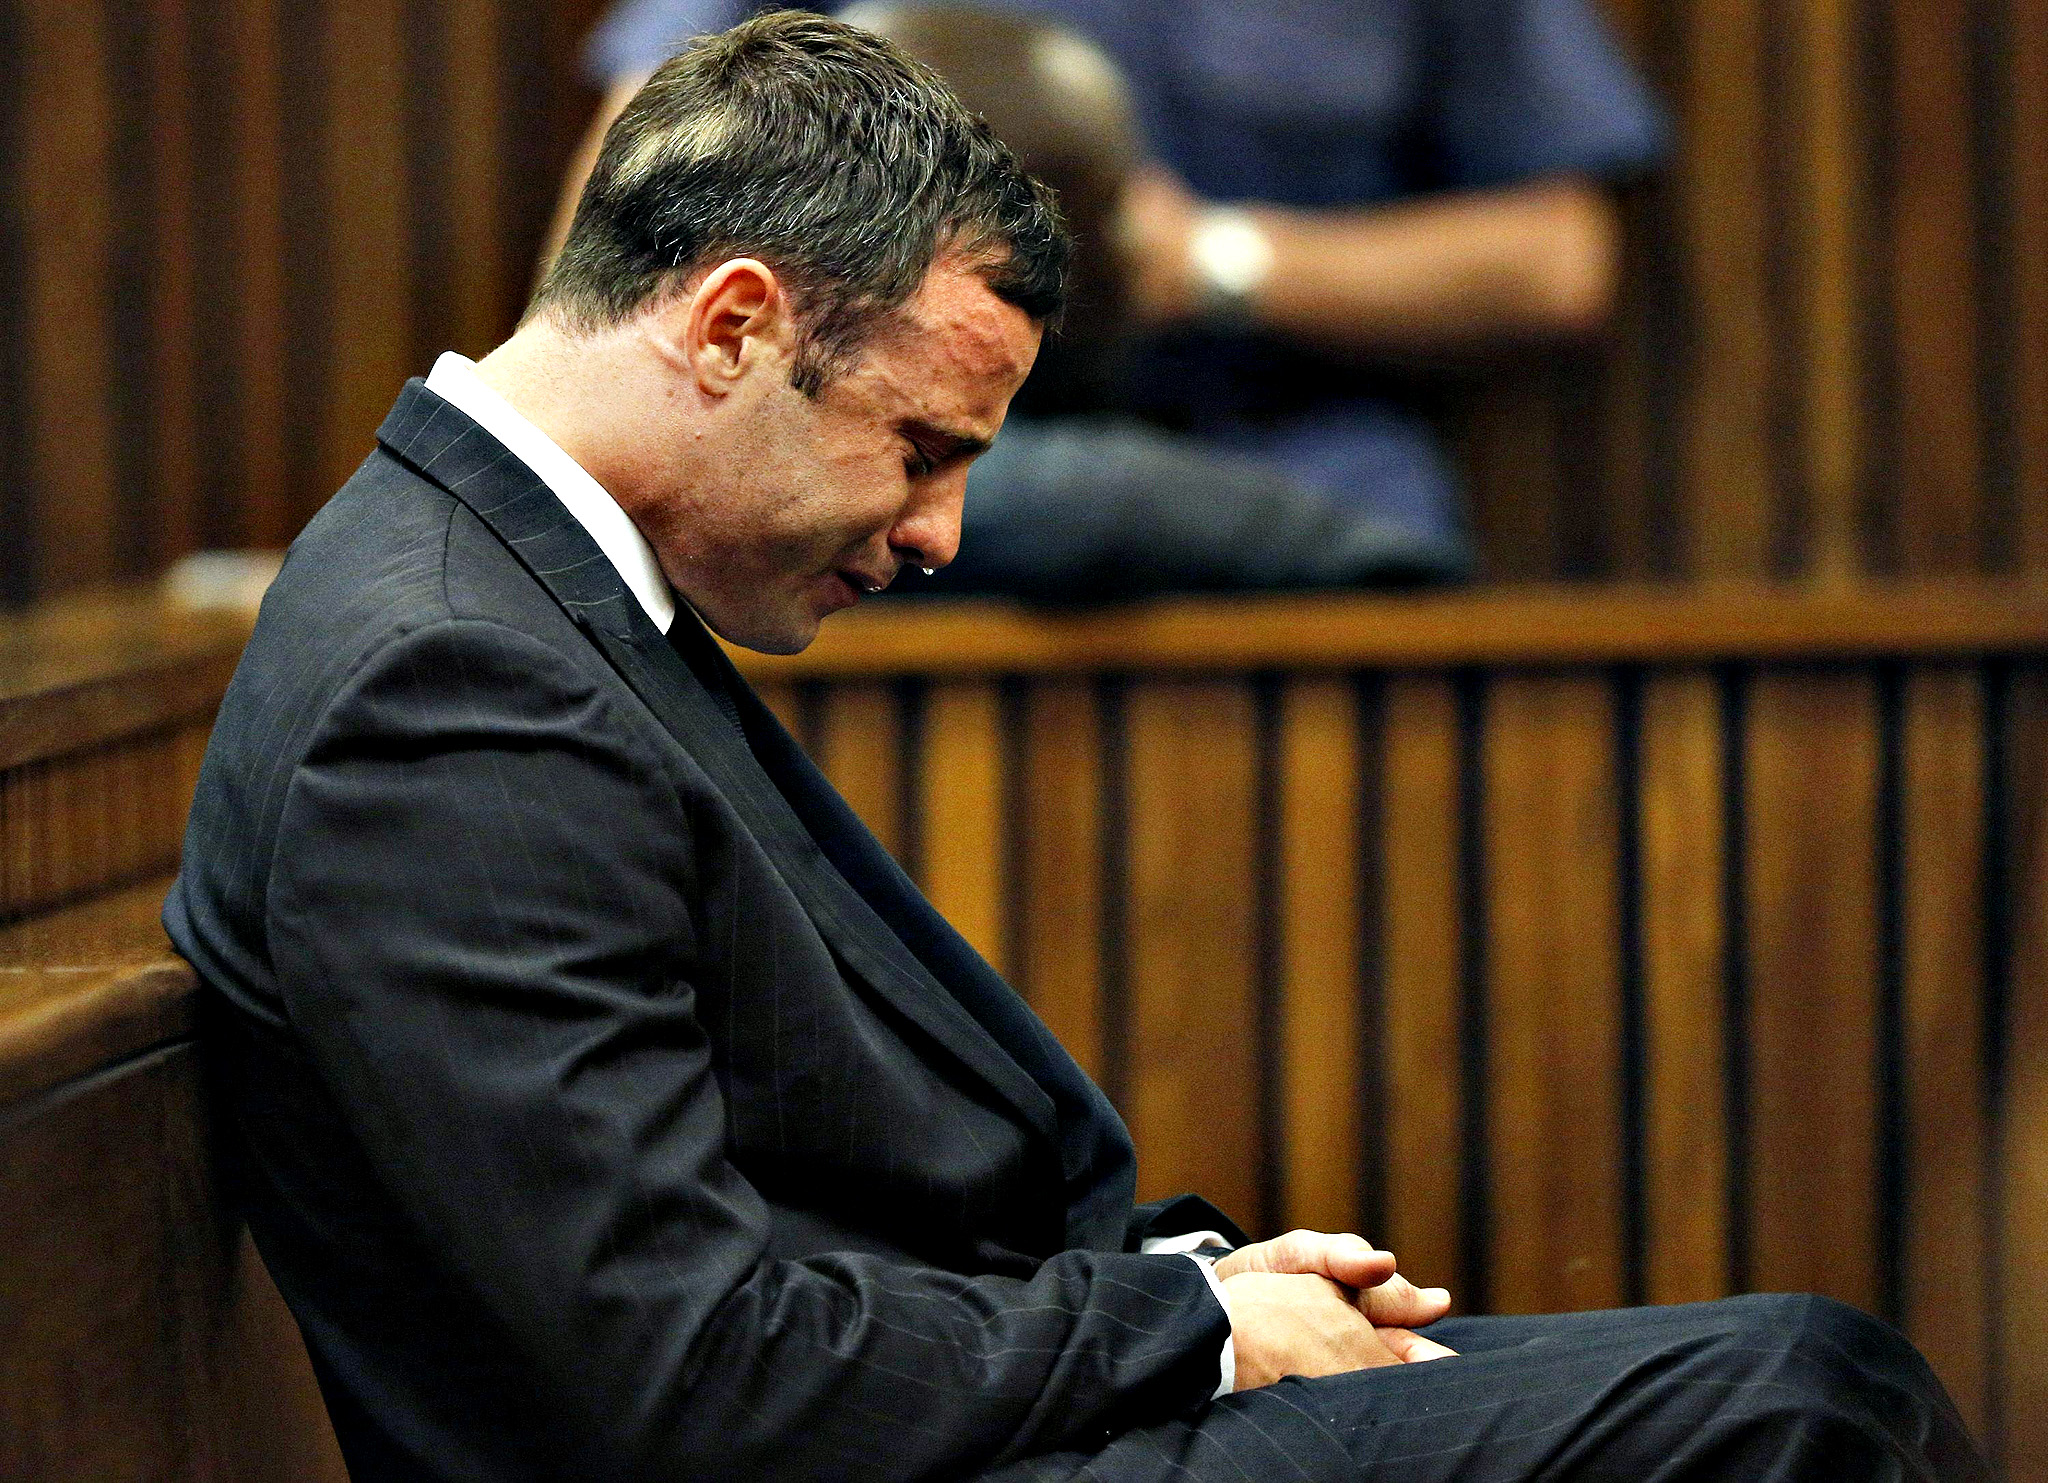 Olympic and Paralympic track star Oscar Pistorius reacts as he listens to Judge Thokozile Masipa's judgement at the North Gauteng High Court in Pretoria...Olympic and Paralympic track star Oscar Pistorius reacts as he listens to Judge Thokozile Masipa's judgement at the North Gauteng High Court in Pretoria, September 11, 2014. A South African judge cleared Oscar Pistorius of all murder charges on Thursday, saying prosecutors had failed to prove the Olympic and Paralympic track star intended to kill his girlfriend or an imagined intruder on Valentine's Day last year.